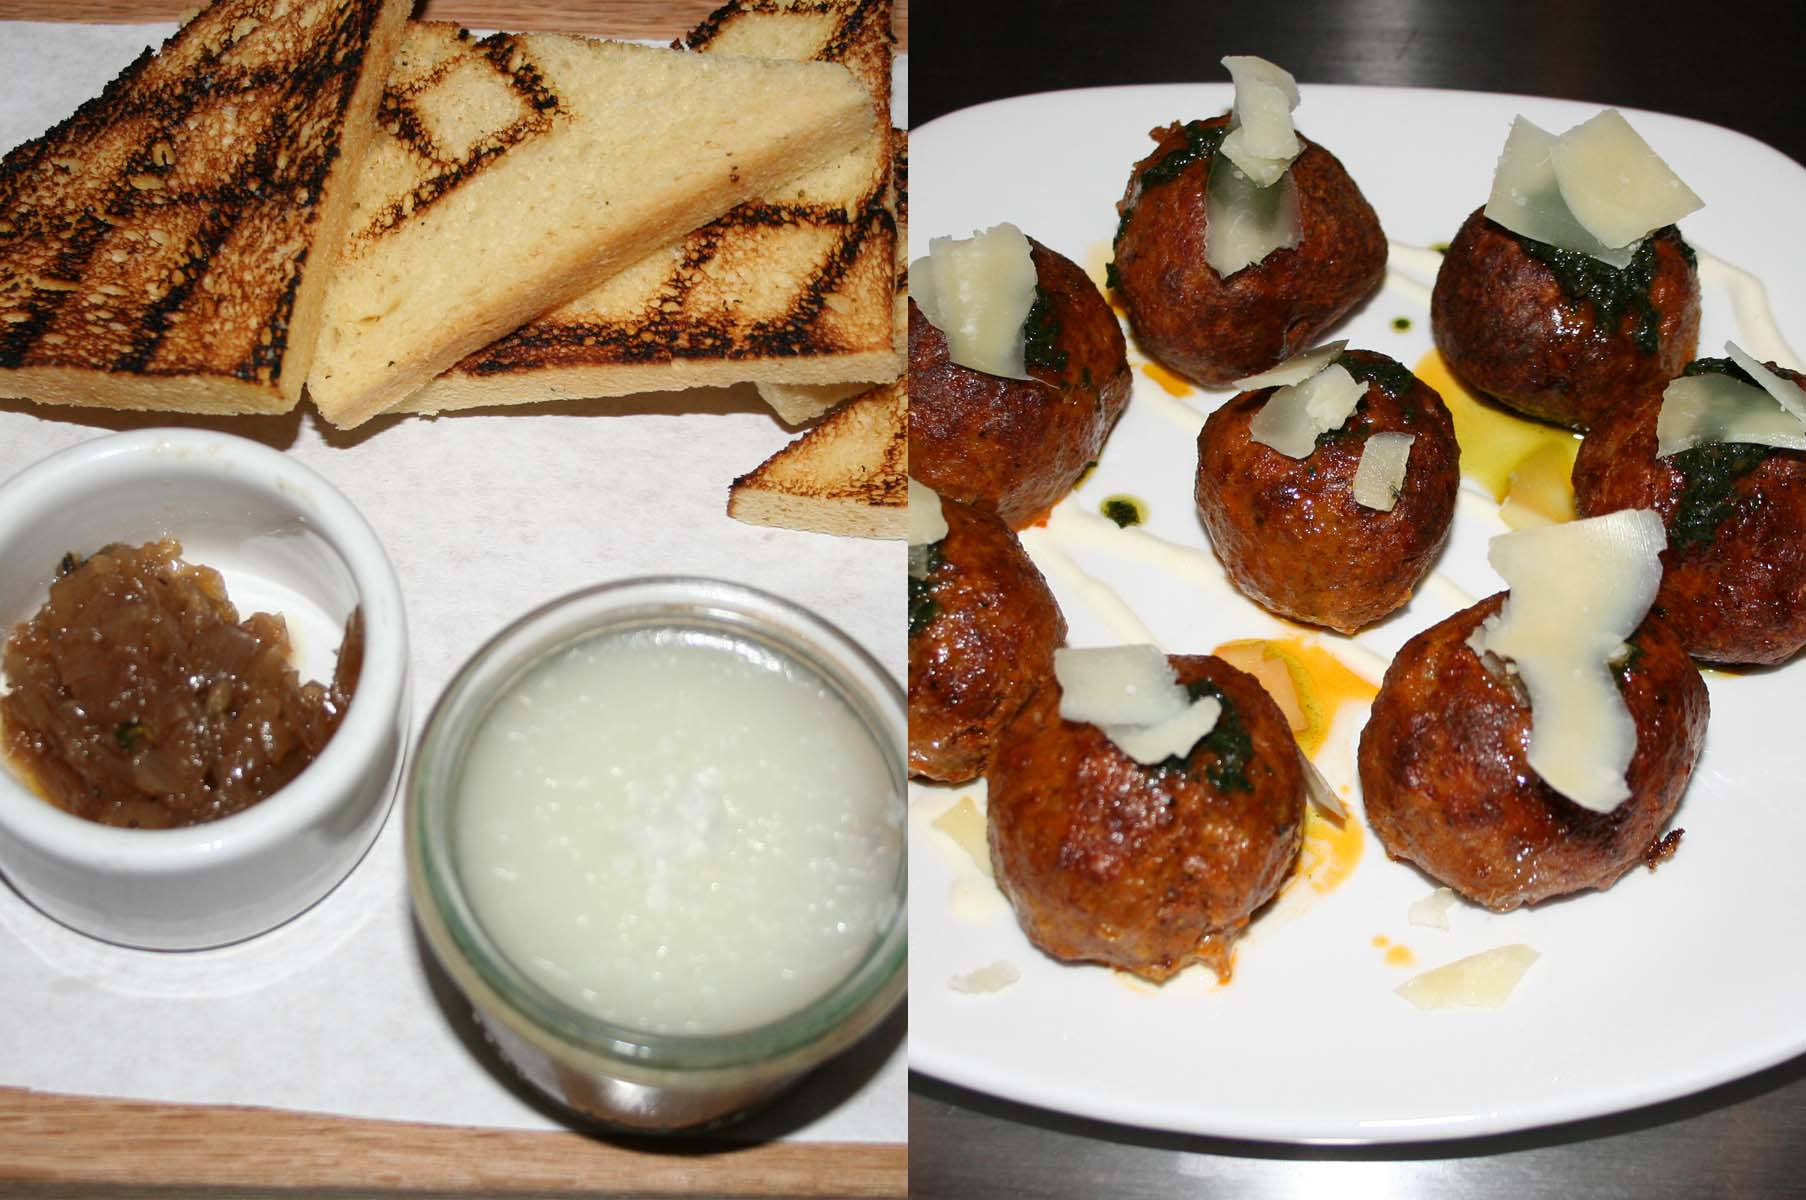 Wine country chicken pate with brioche thyme toast points (left) and lamb meatballs from Vino Volo's new small plates menu. (Photos: Mark Heckathorn/DC on Heels)